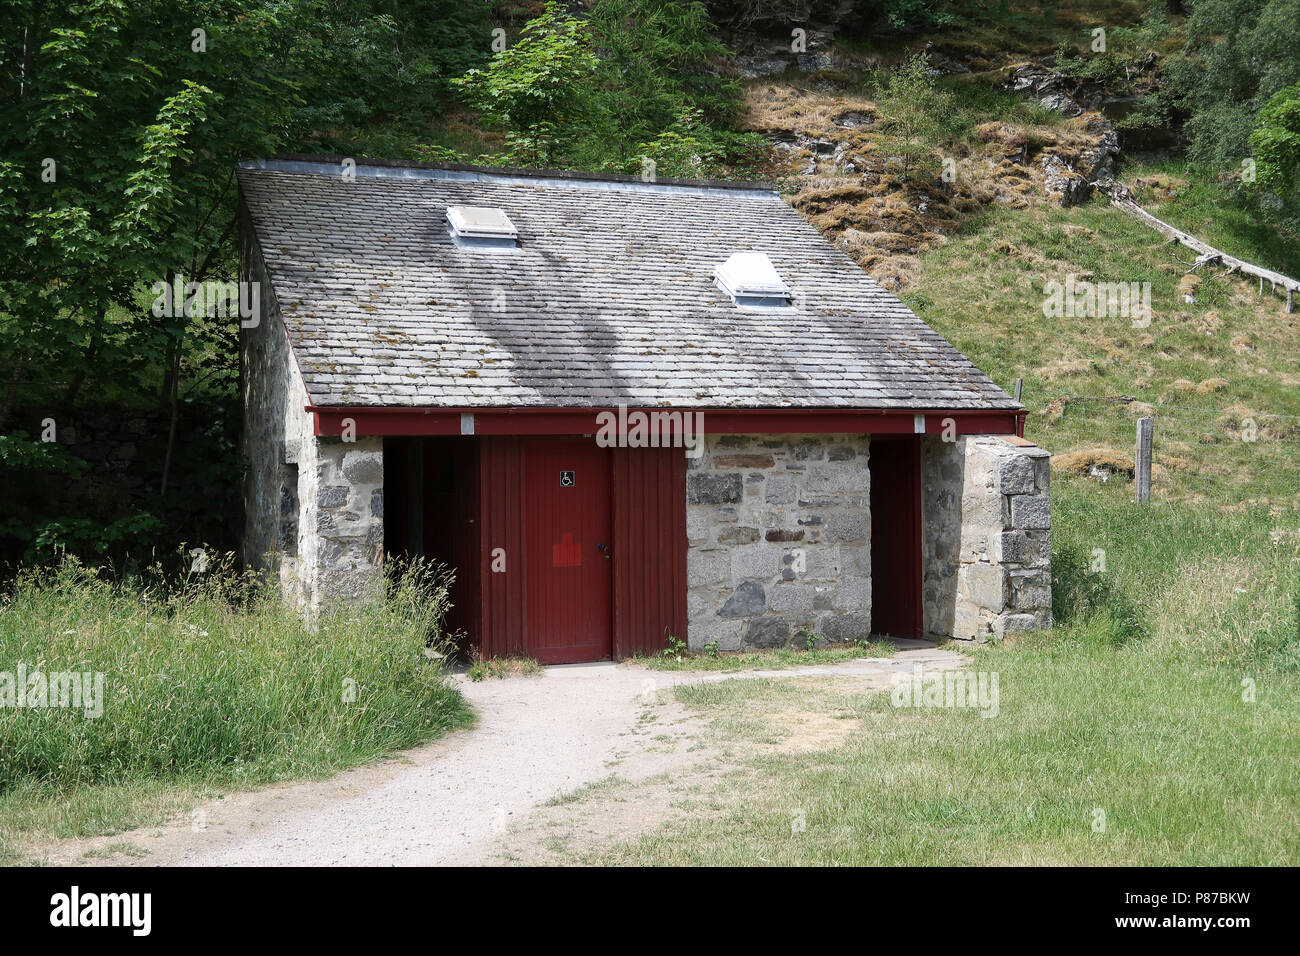 Public toilets at Loch an Eilein visitor centre - Stock Image